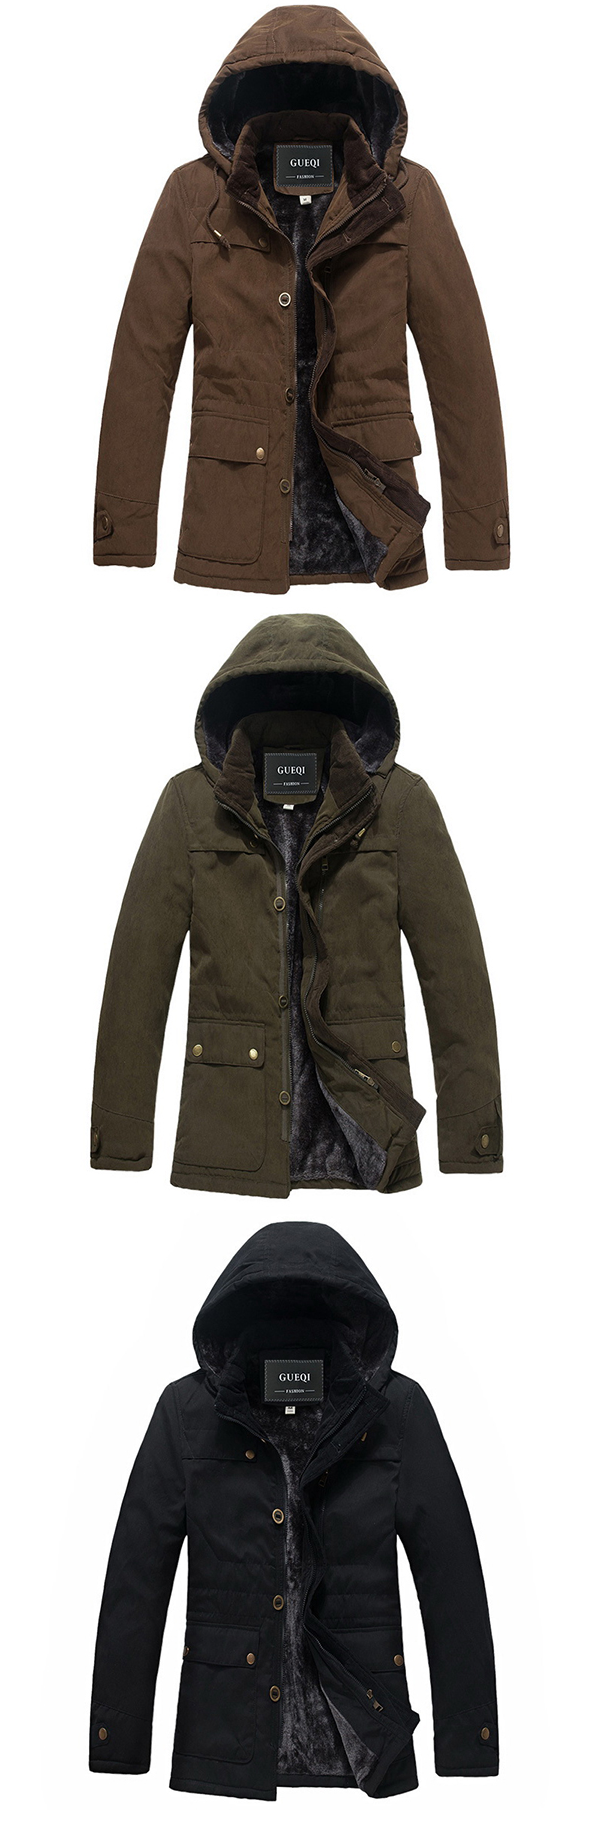 Thick Inside Fleece Warm Hooded Pockets Solid Color Jacket